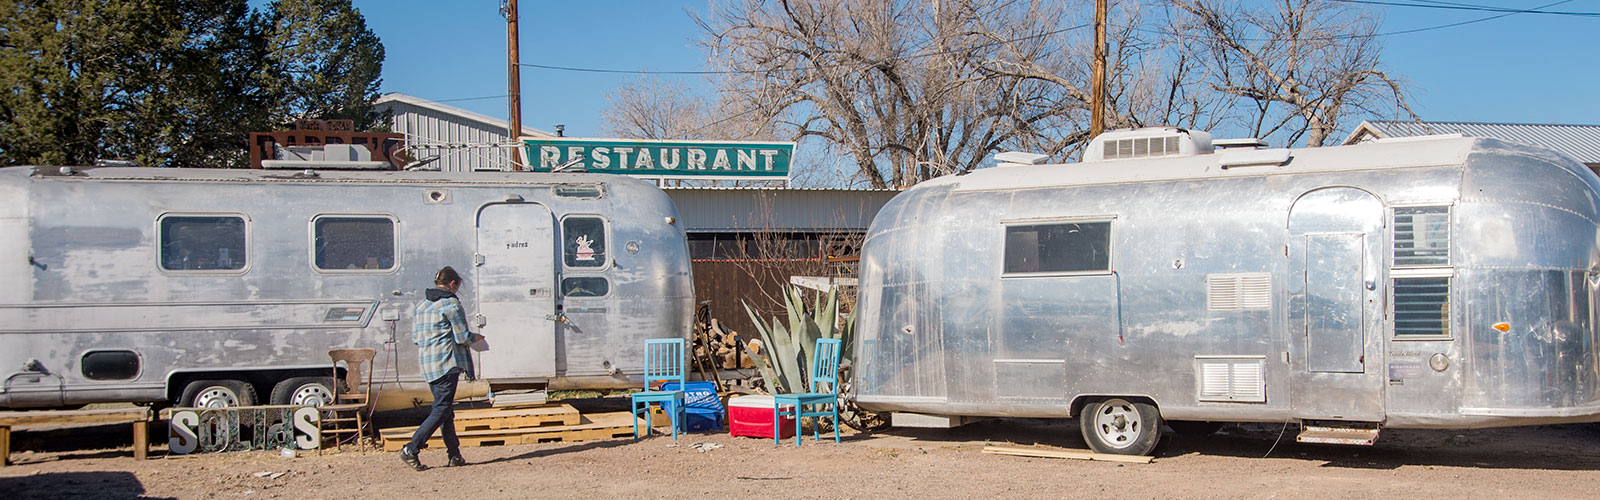 Food trucks in Marfa.